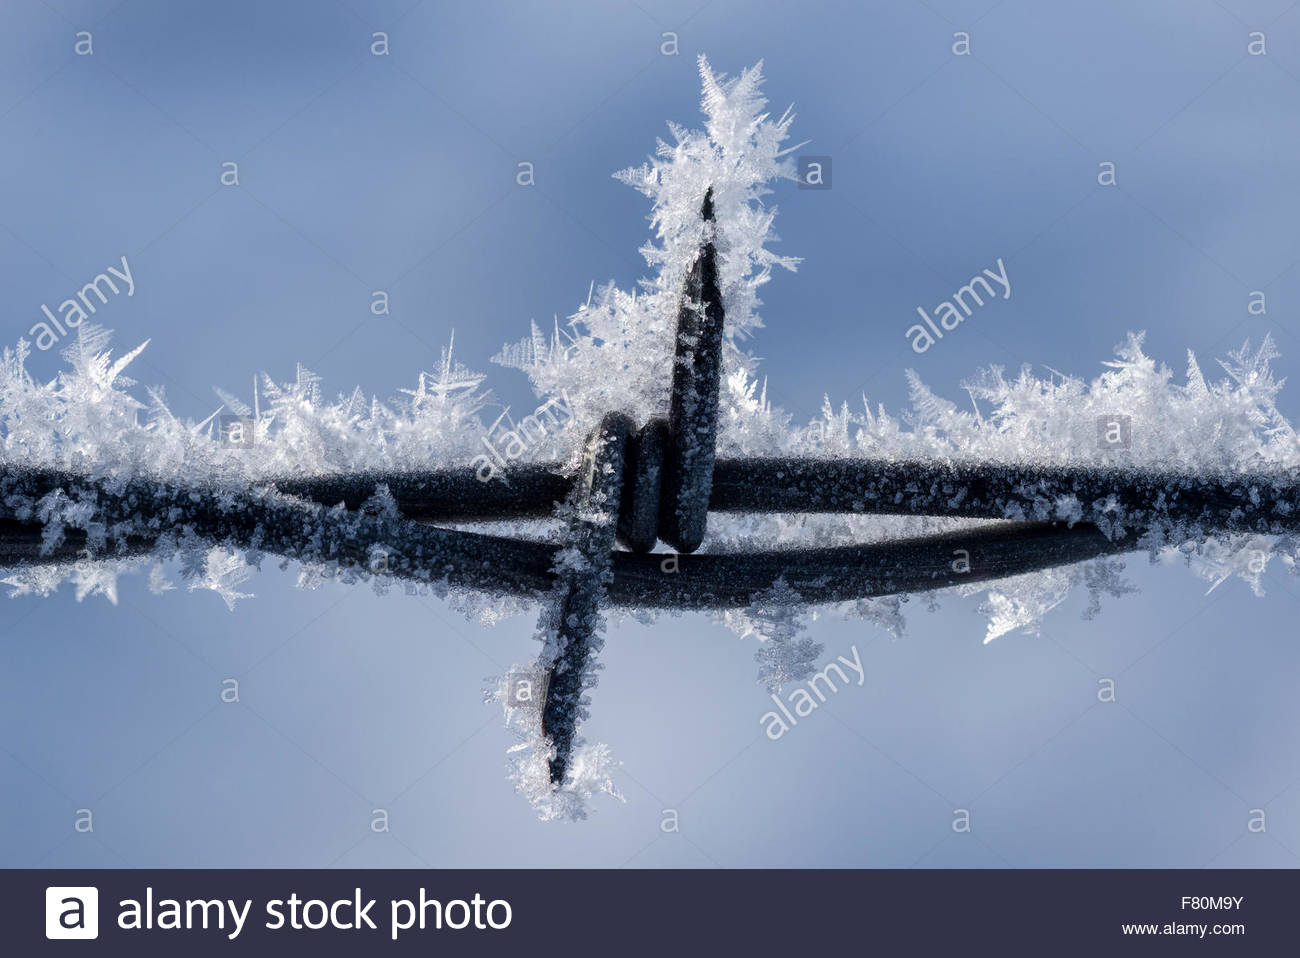 Close up of hoar frost on a barbed wire fence, Wallowa Valley, Oregon. - Stock Image